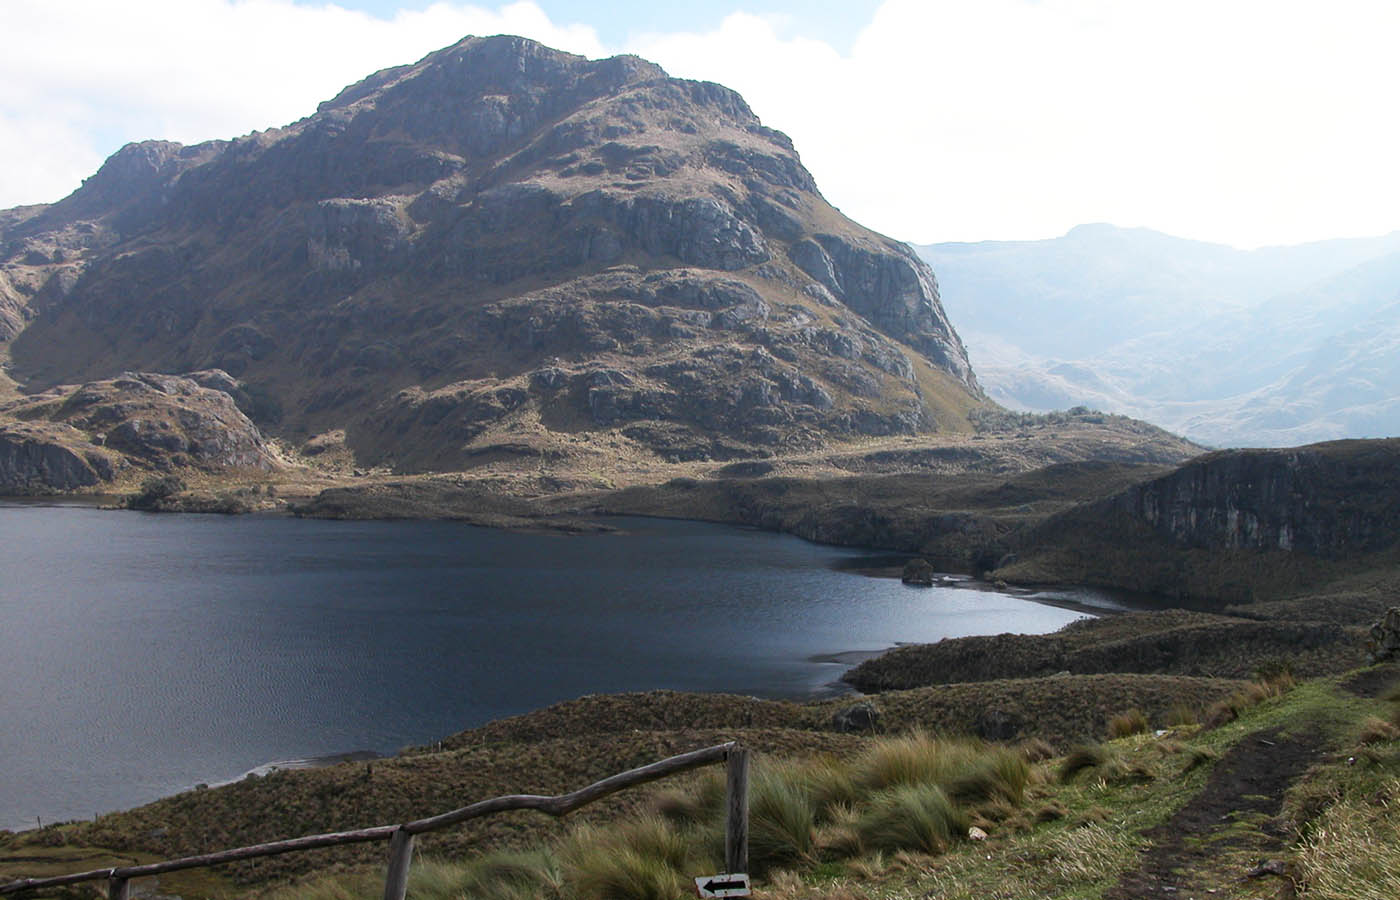 Cajas National Park - The Cajas National Park can be found in the highlands of Ecuador, about 30 km west from Cuenca. The park is between 3100m and 4450m above sea level which lead to a tundra vegetation and a jagged landscape of hills and valleys.